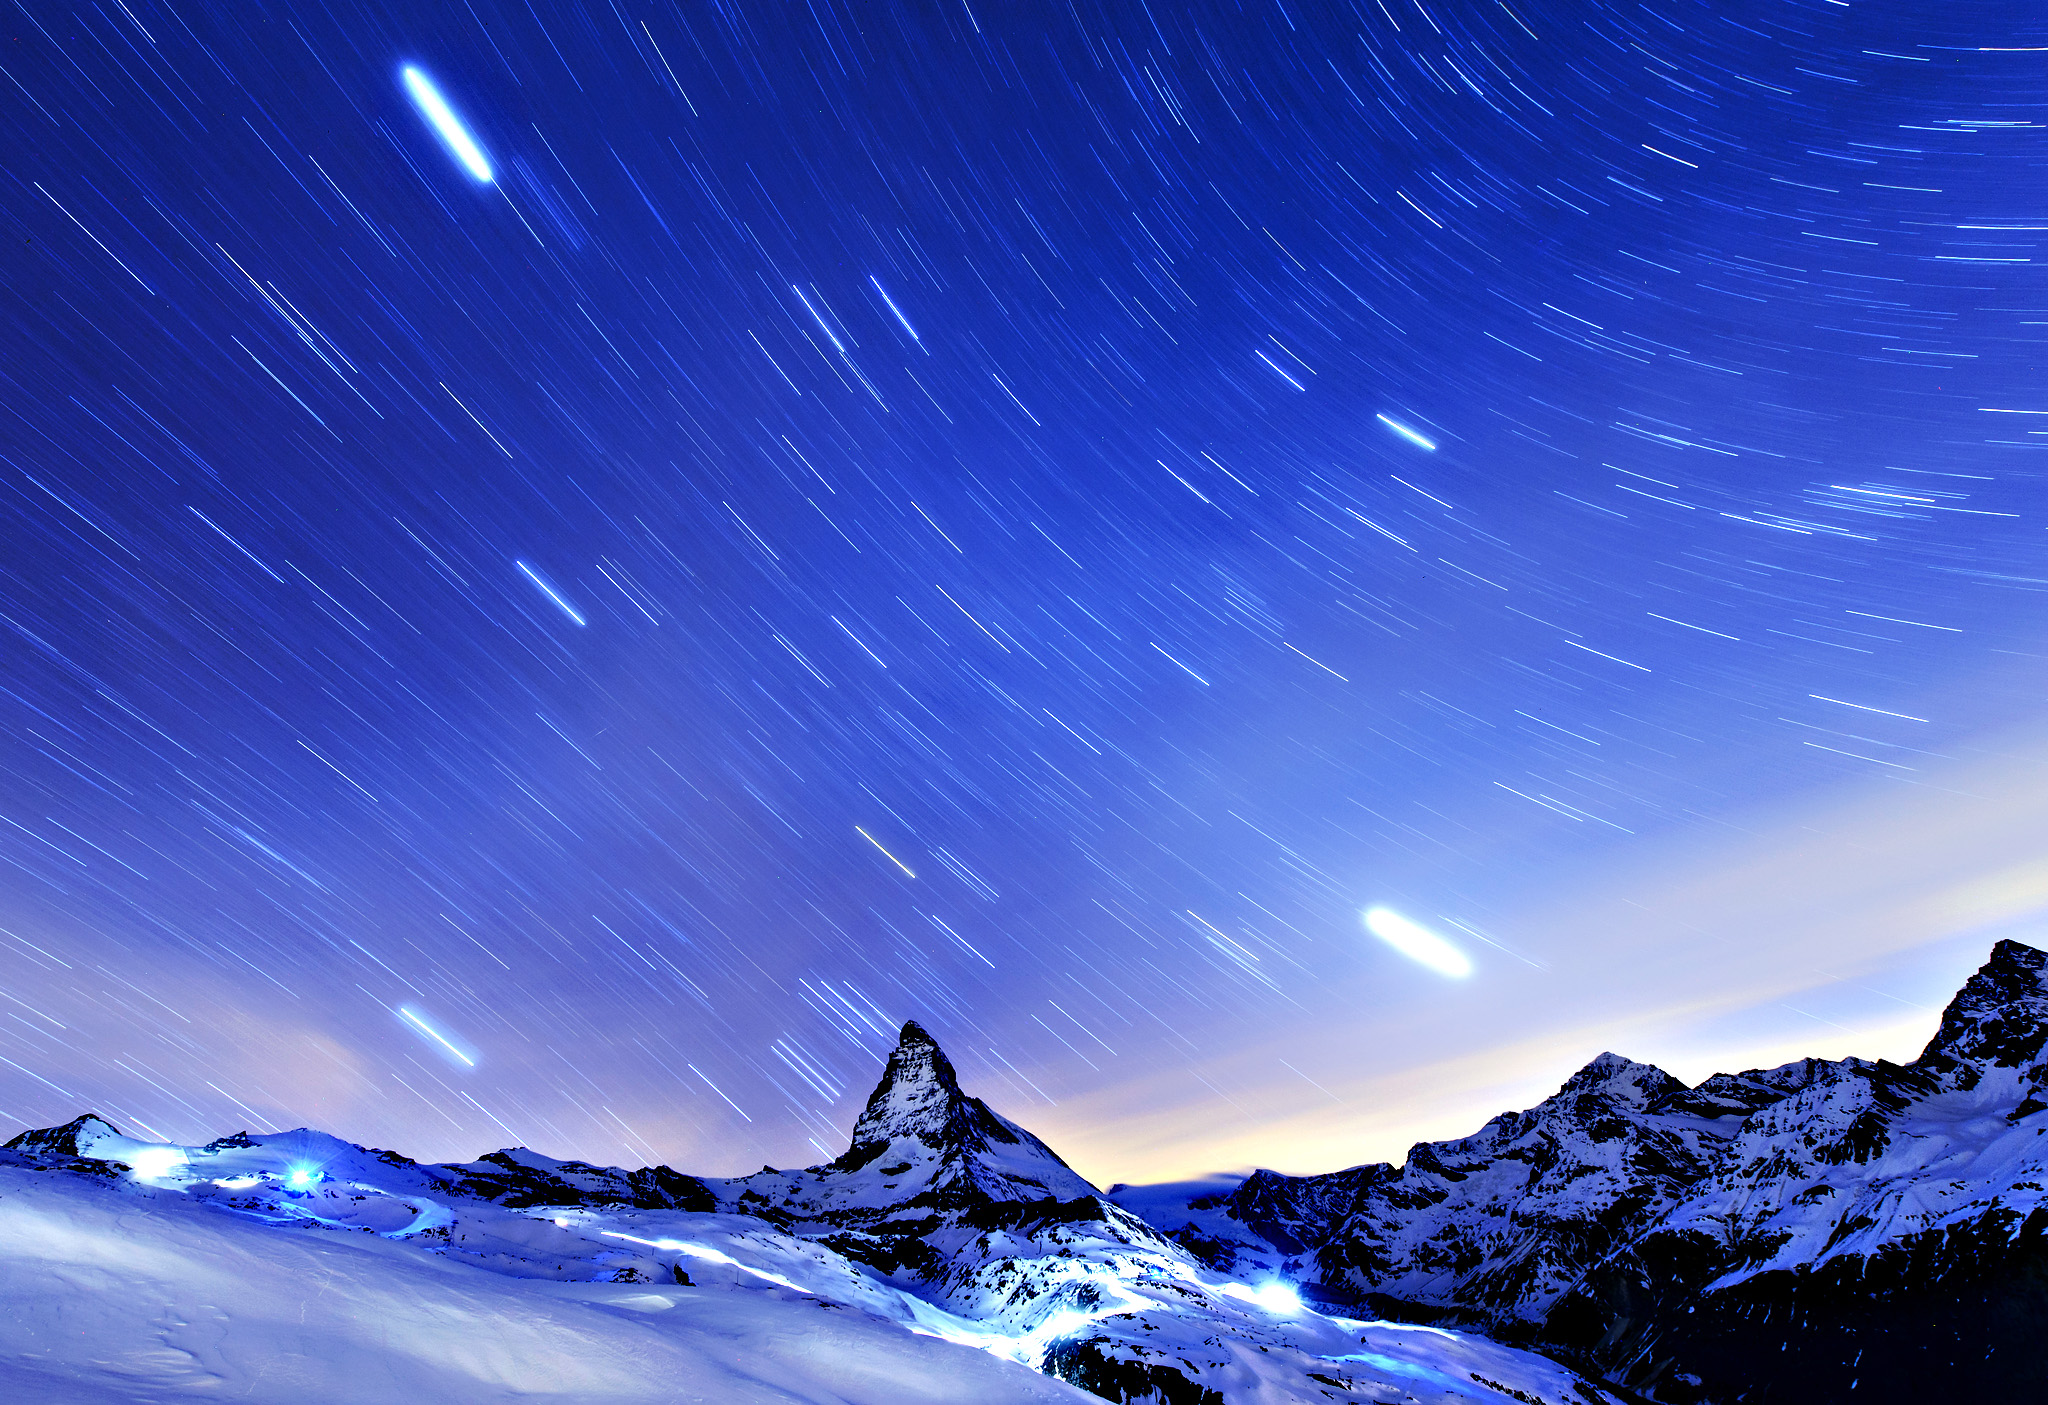 Stars are pictured over the famous Matterhorn mountain, seen from the Riffelberg area, in Zermatt, Switzerland.